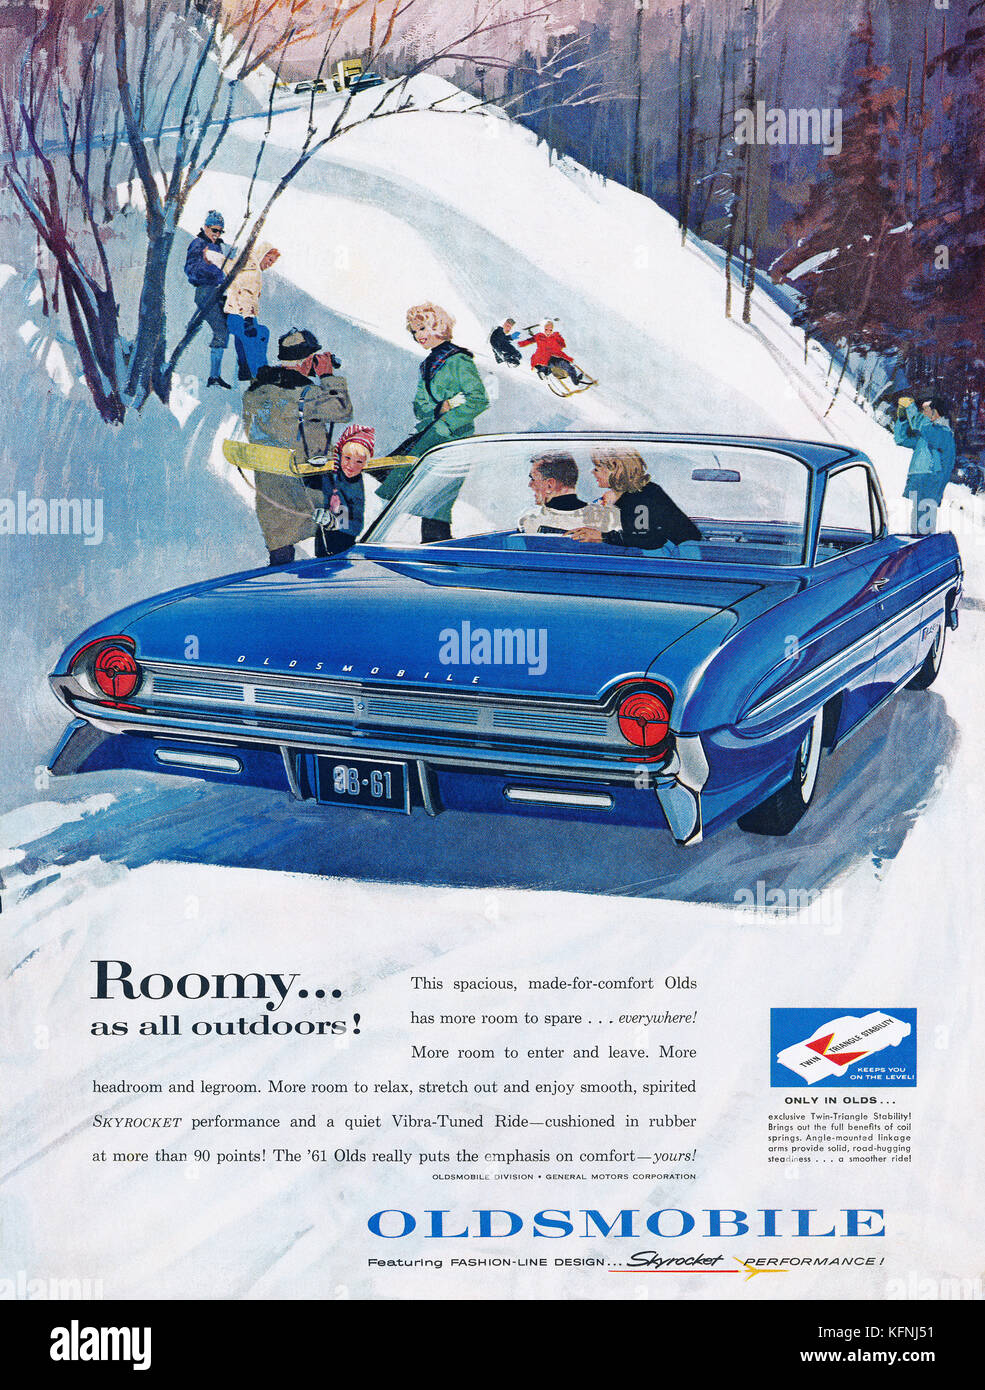 1960 U.S. advertisement for the 1961 Oldsmobile automobile. - Stock Image